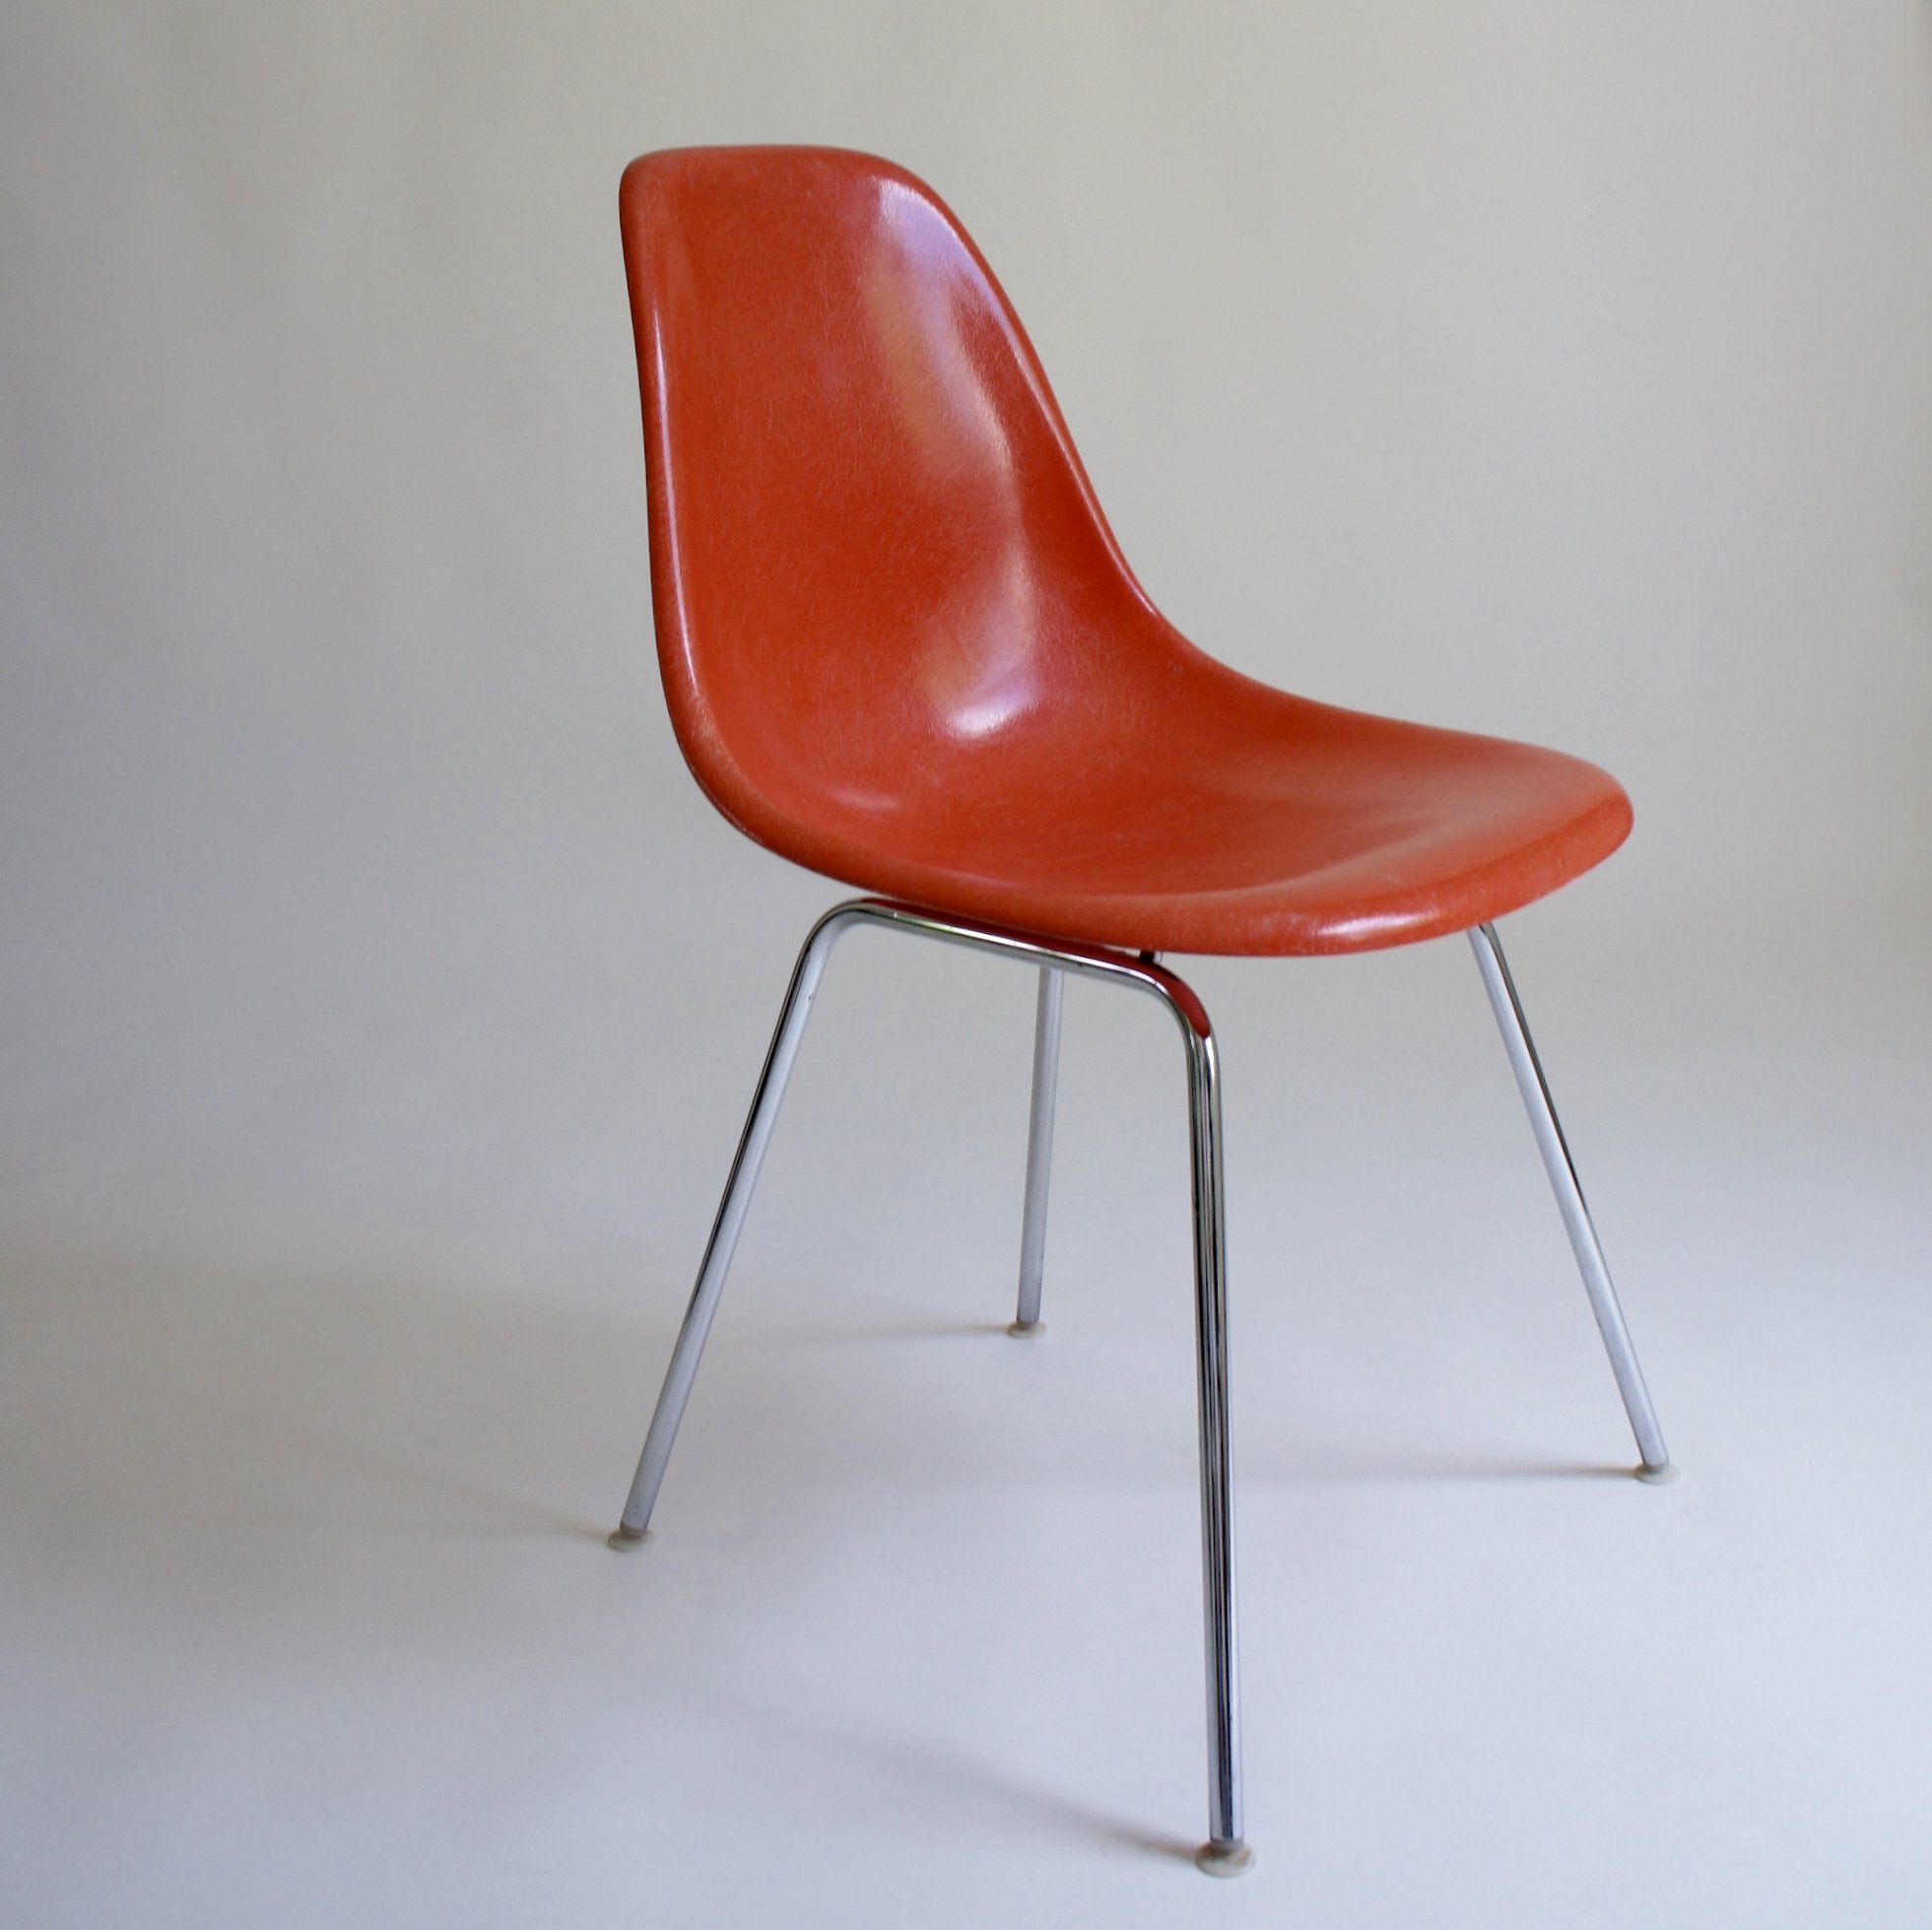 Eames DSX Fiberglass Chair By Herman Miller 81561